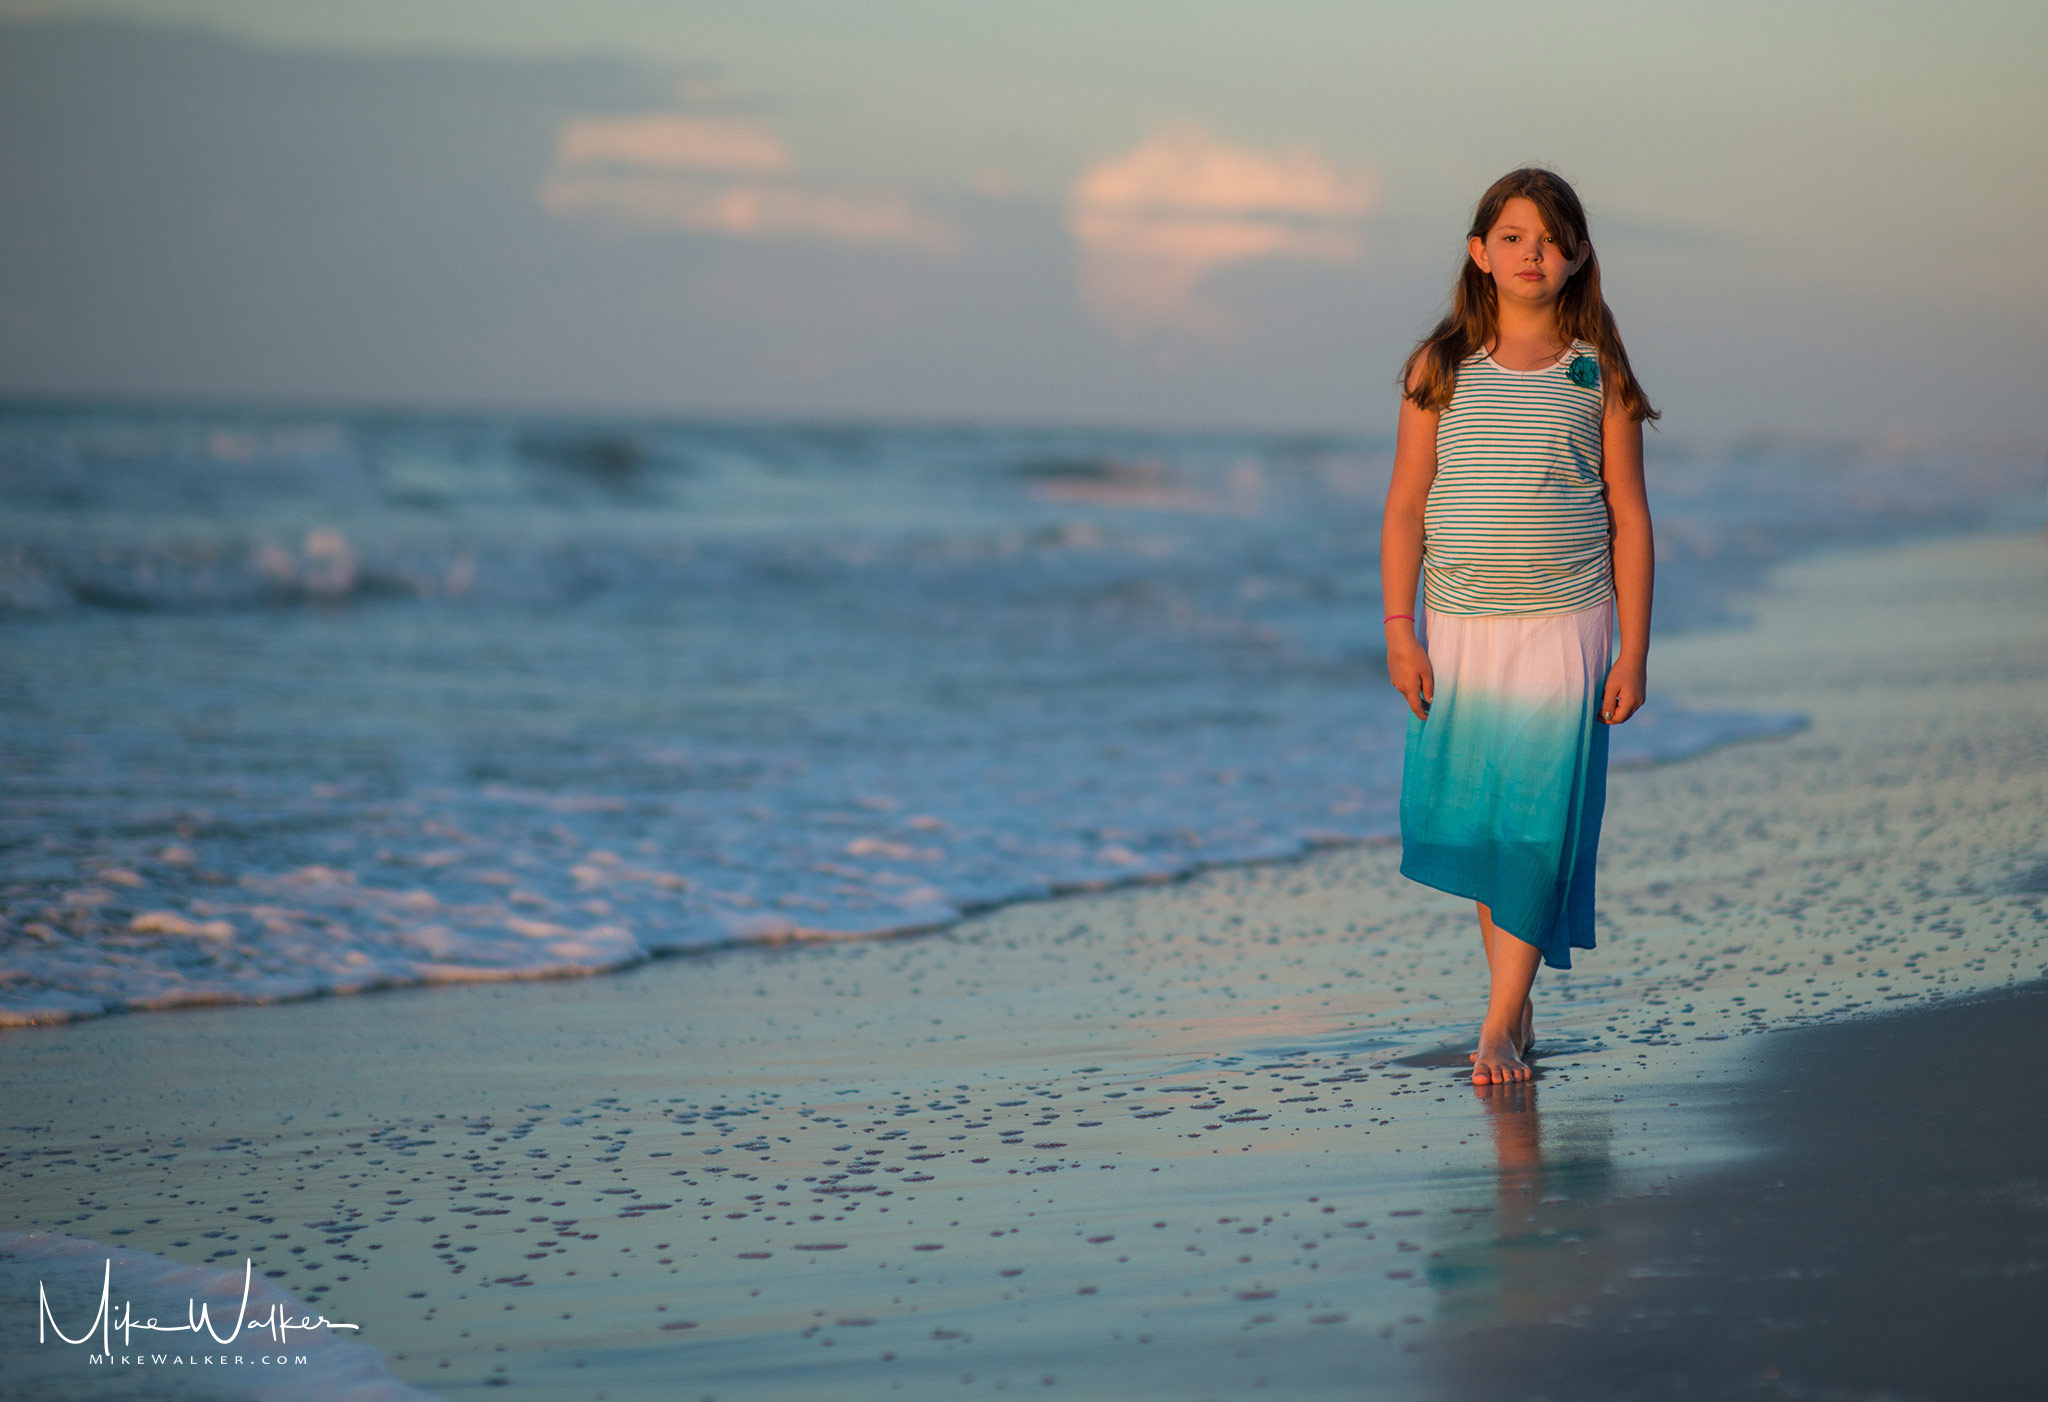 Young girl walking on the beach in the morning. Family photography © Mike Walker